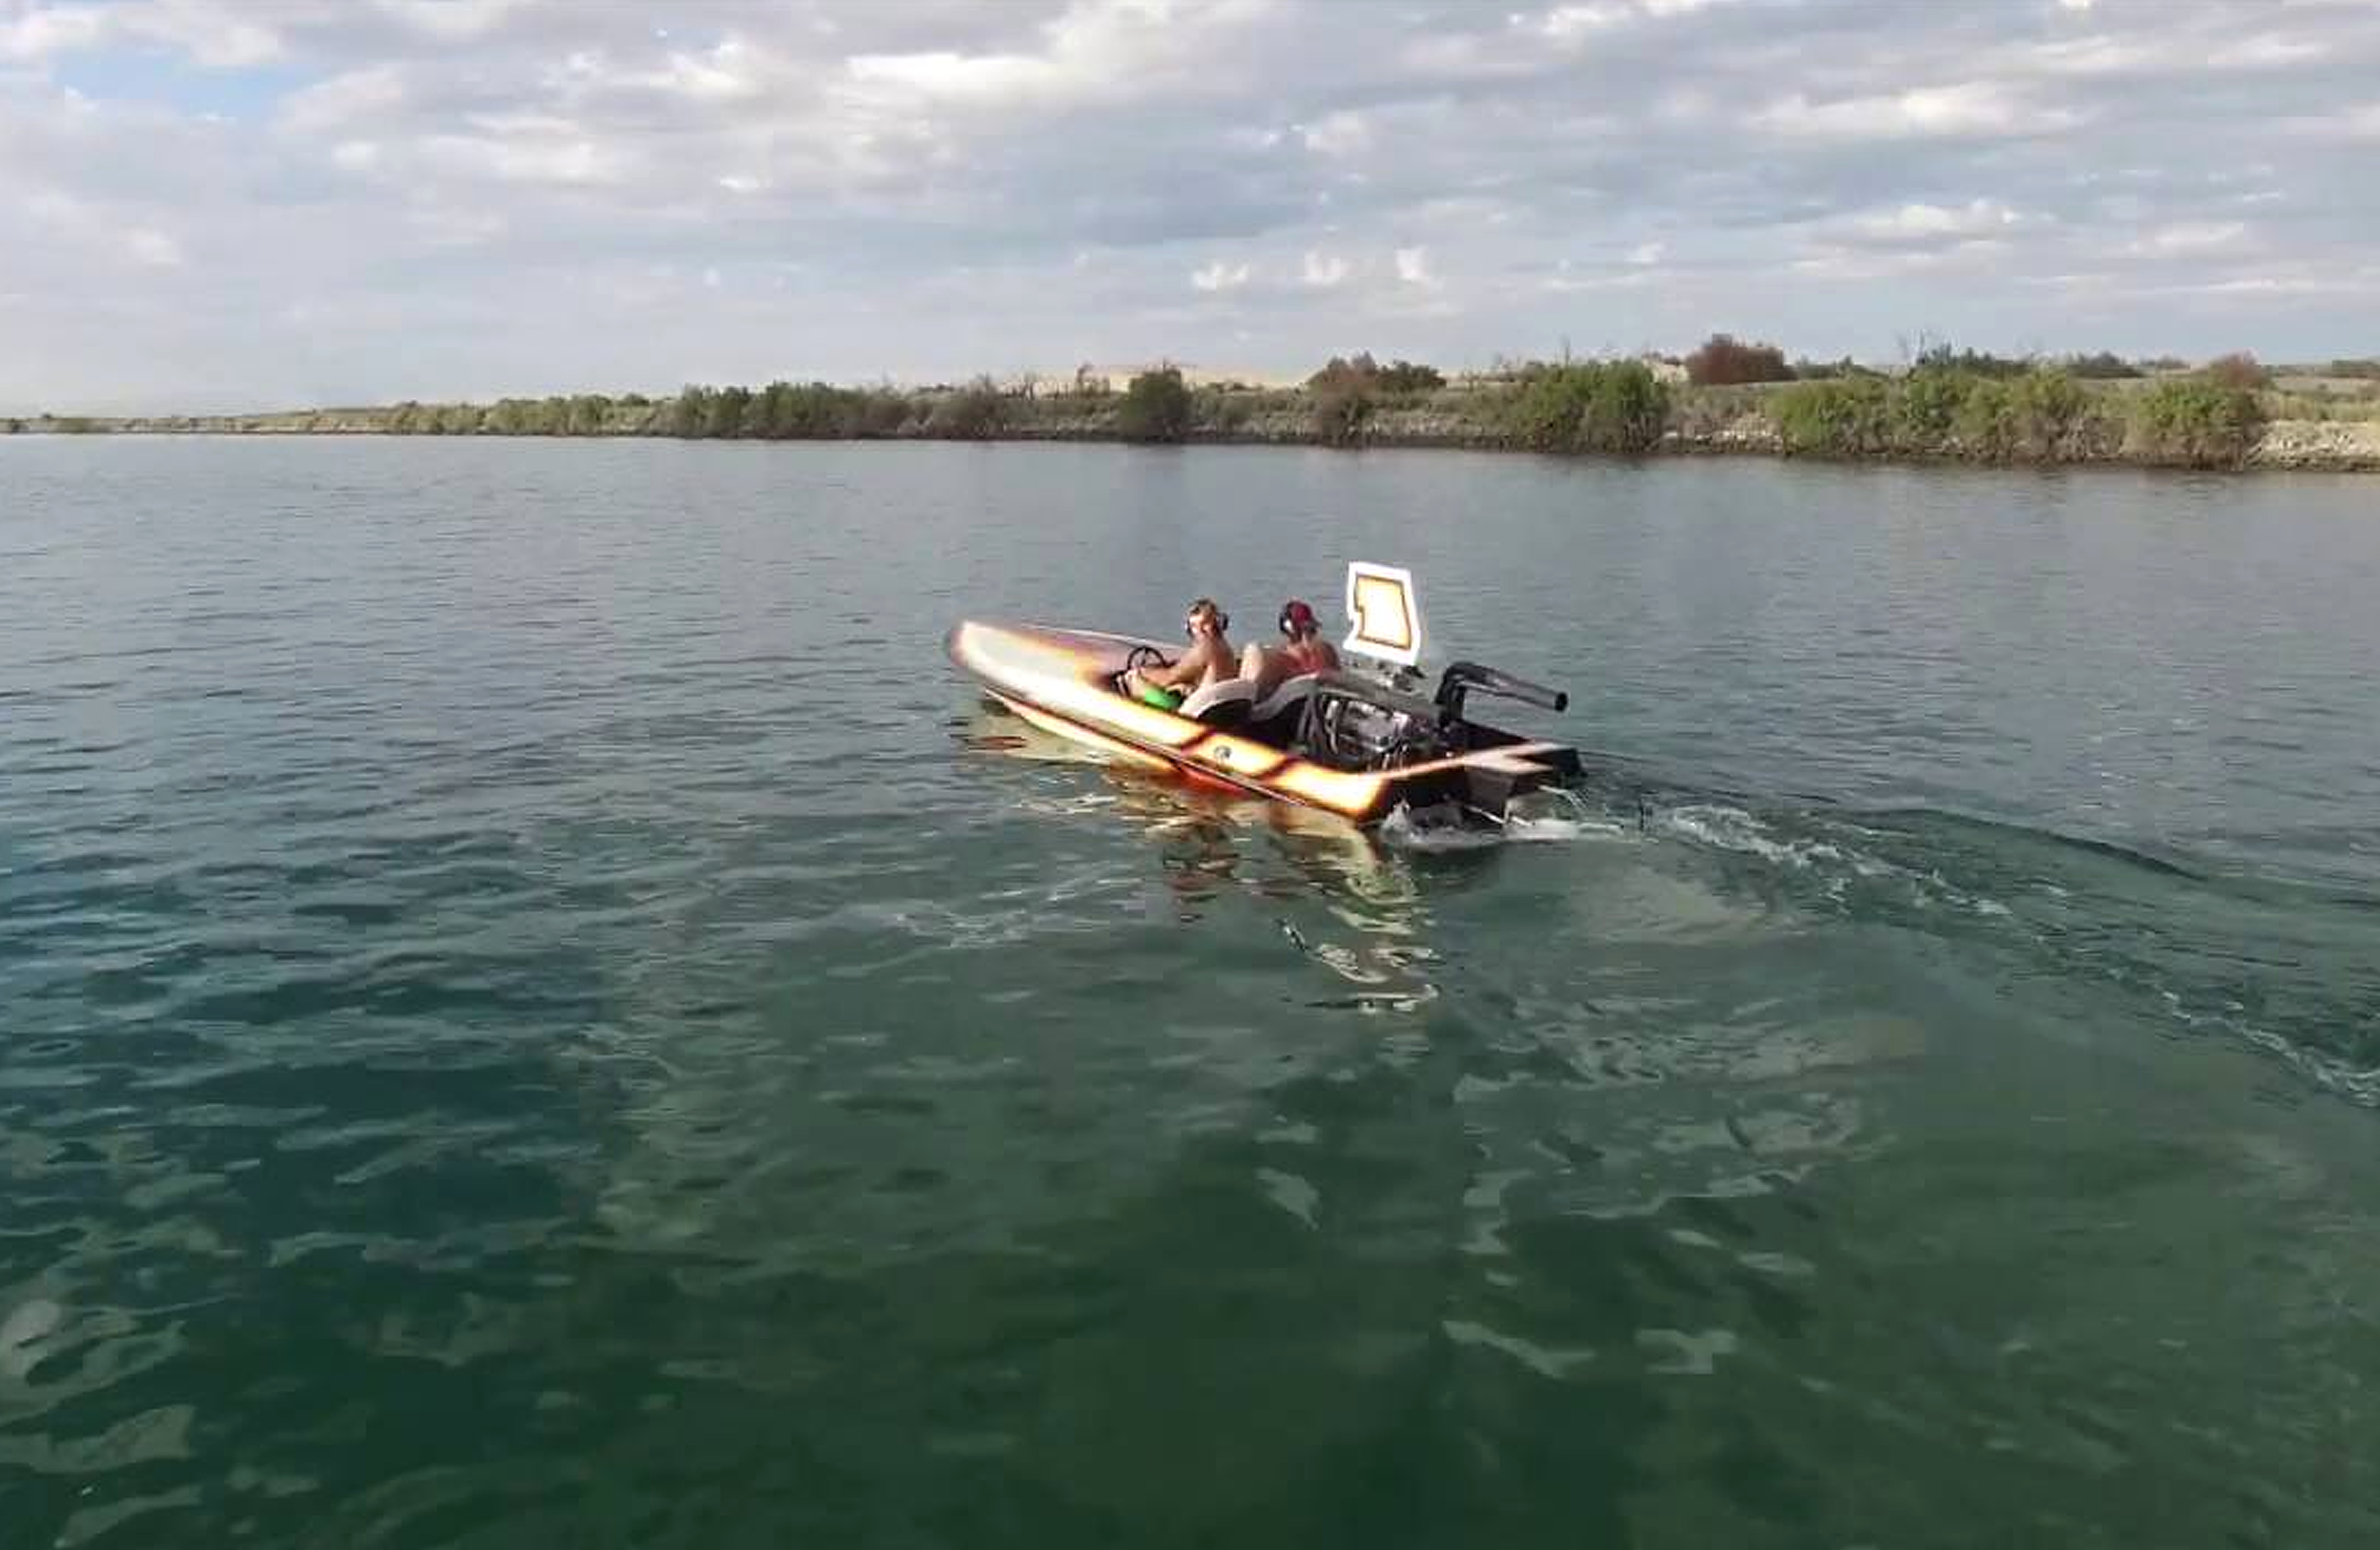 People on small power boat- blurry image